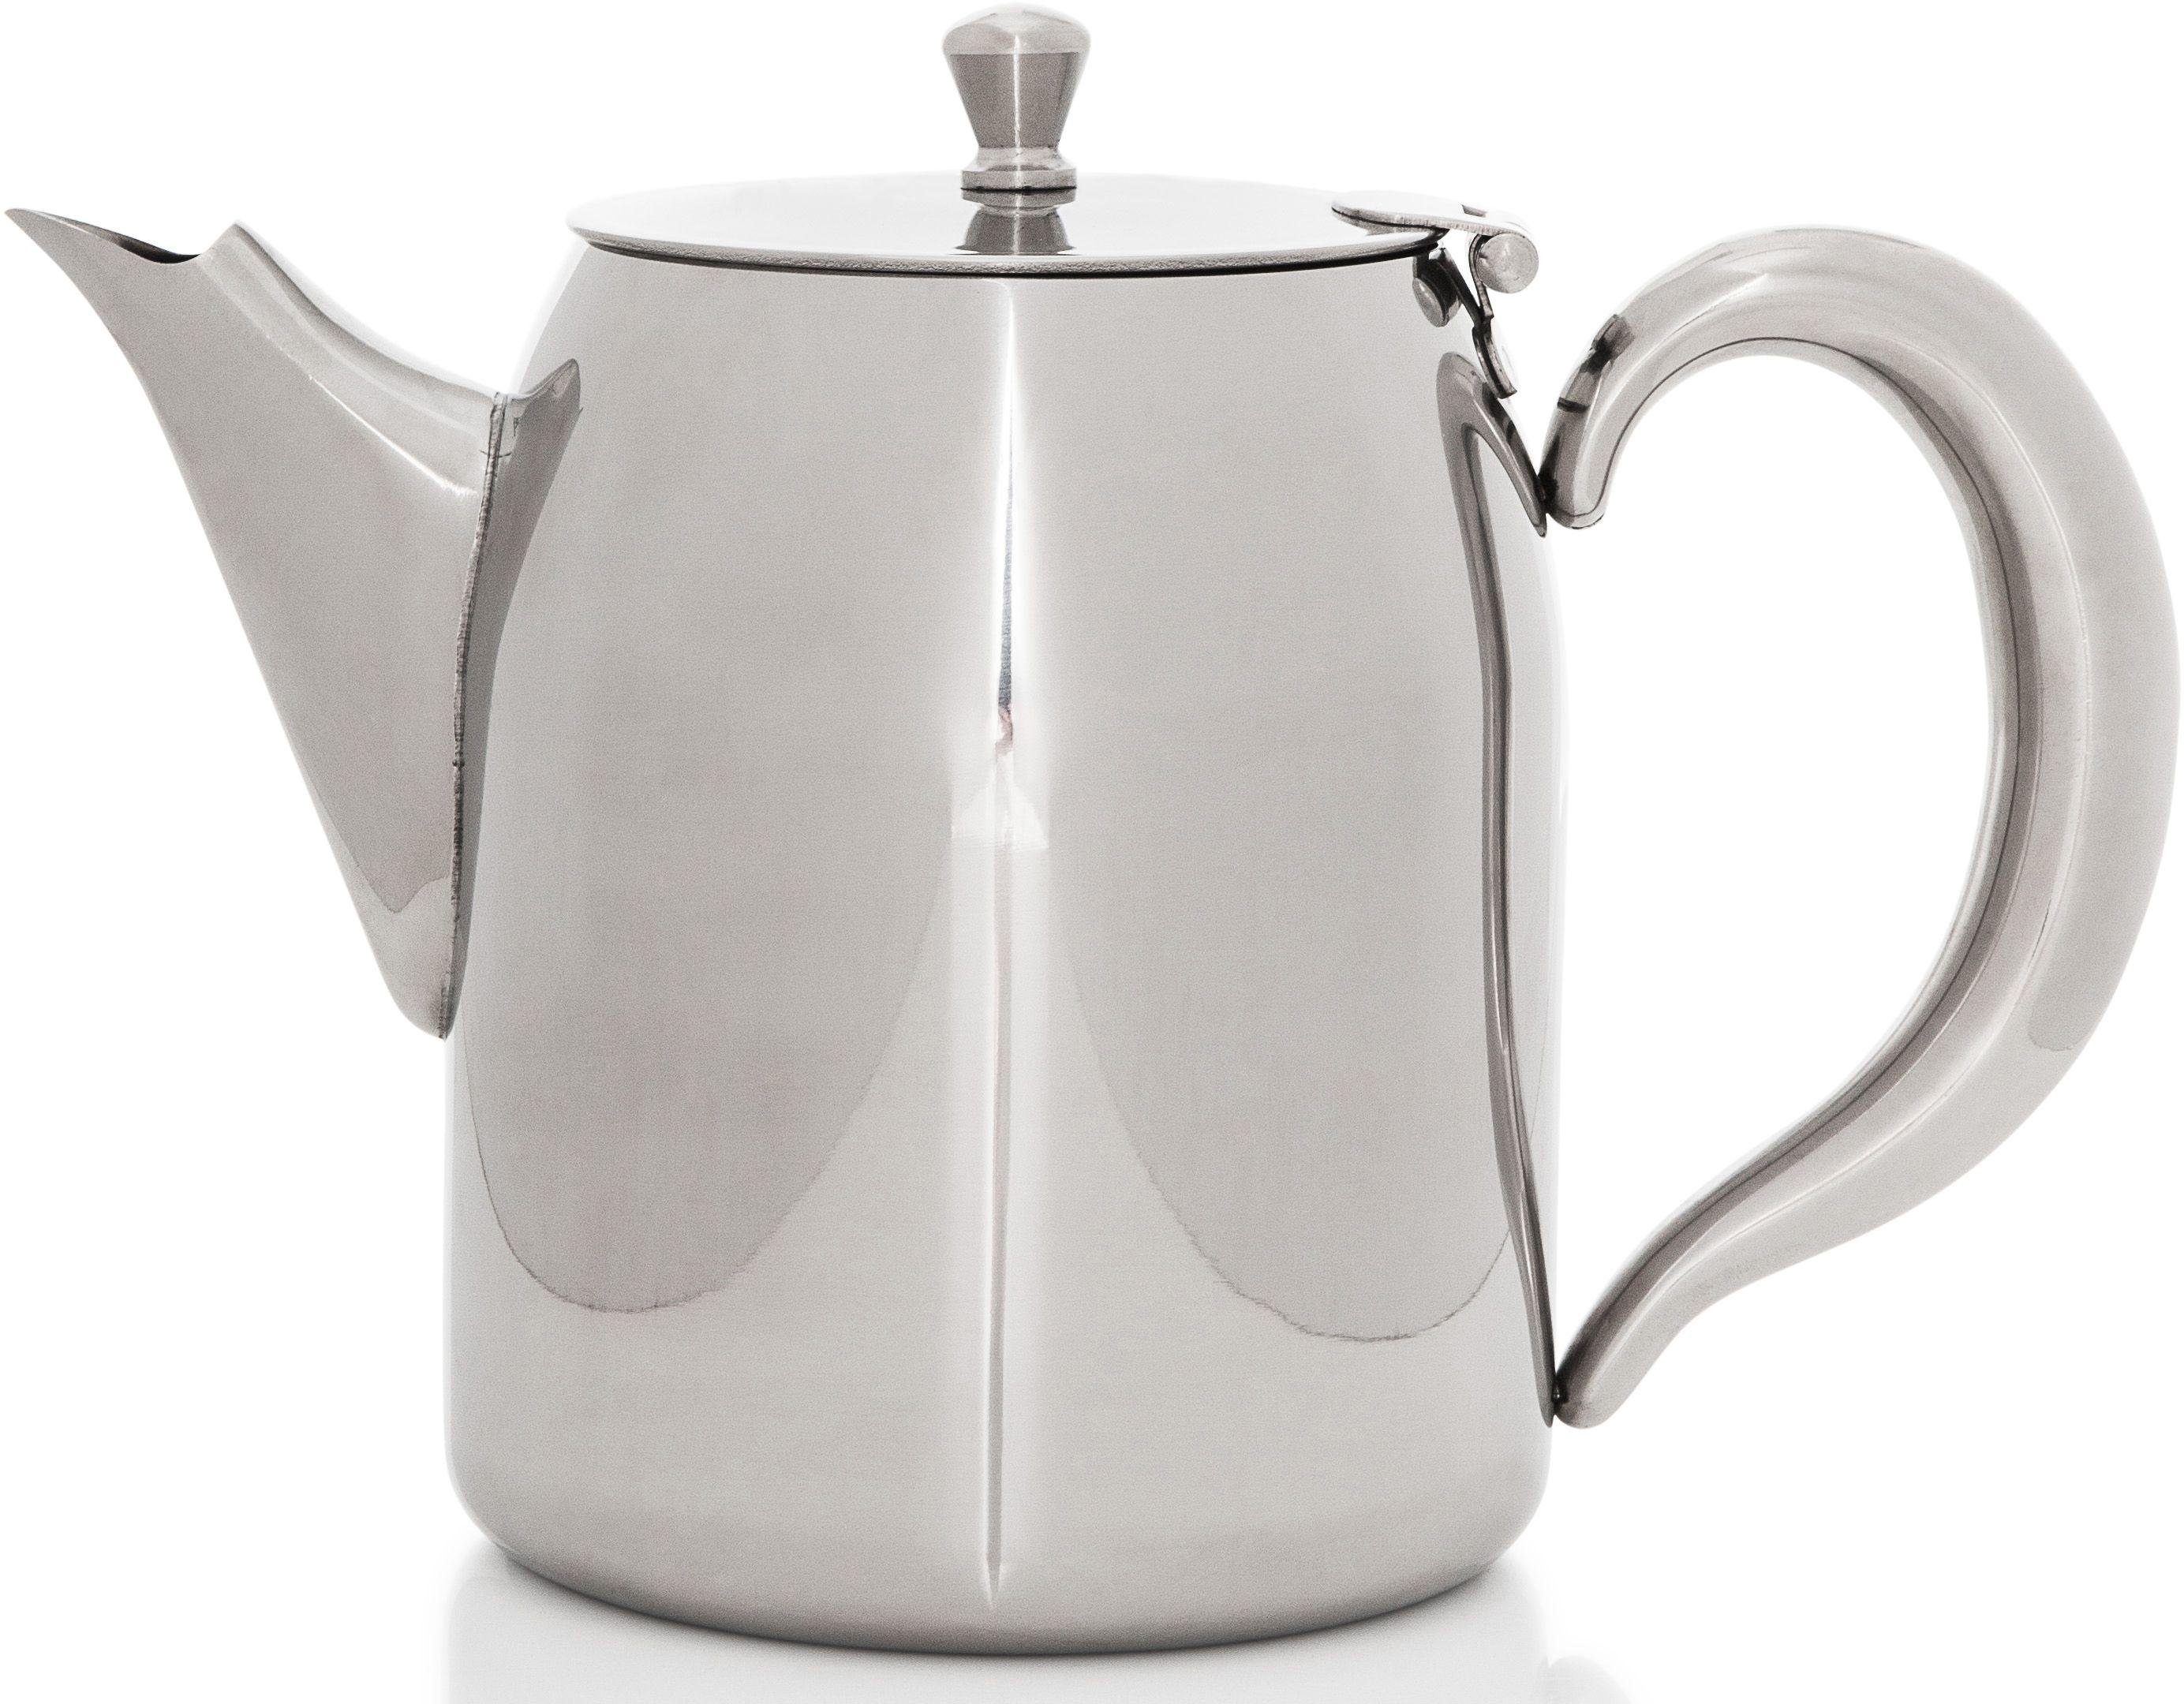 Image of Sabichi Classic Stainless Steel Teapot 1300ml.